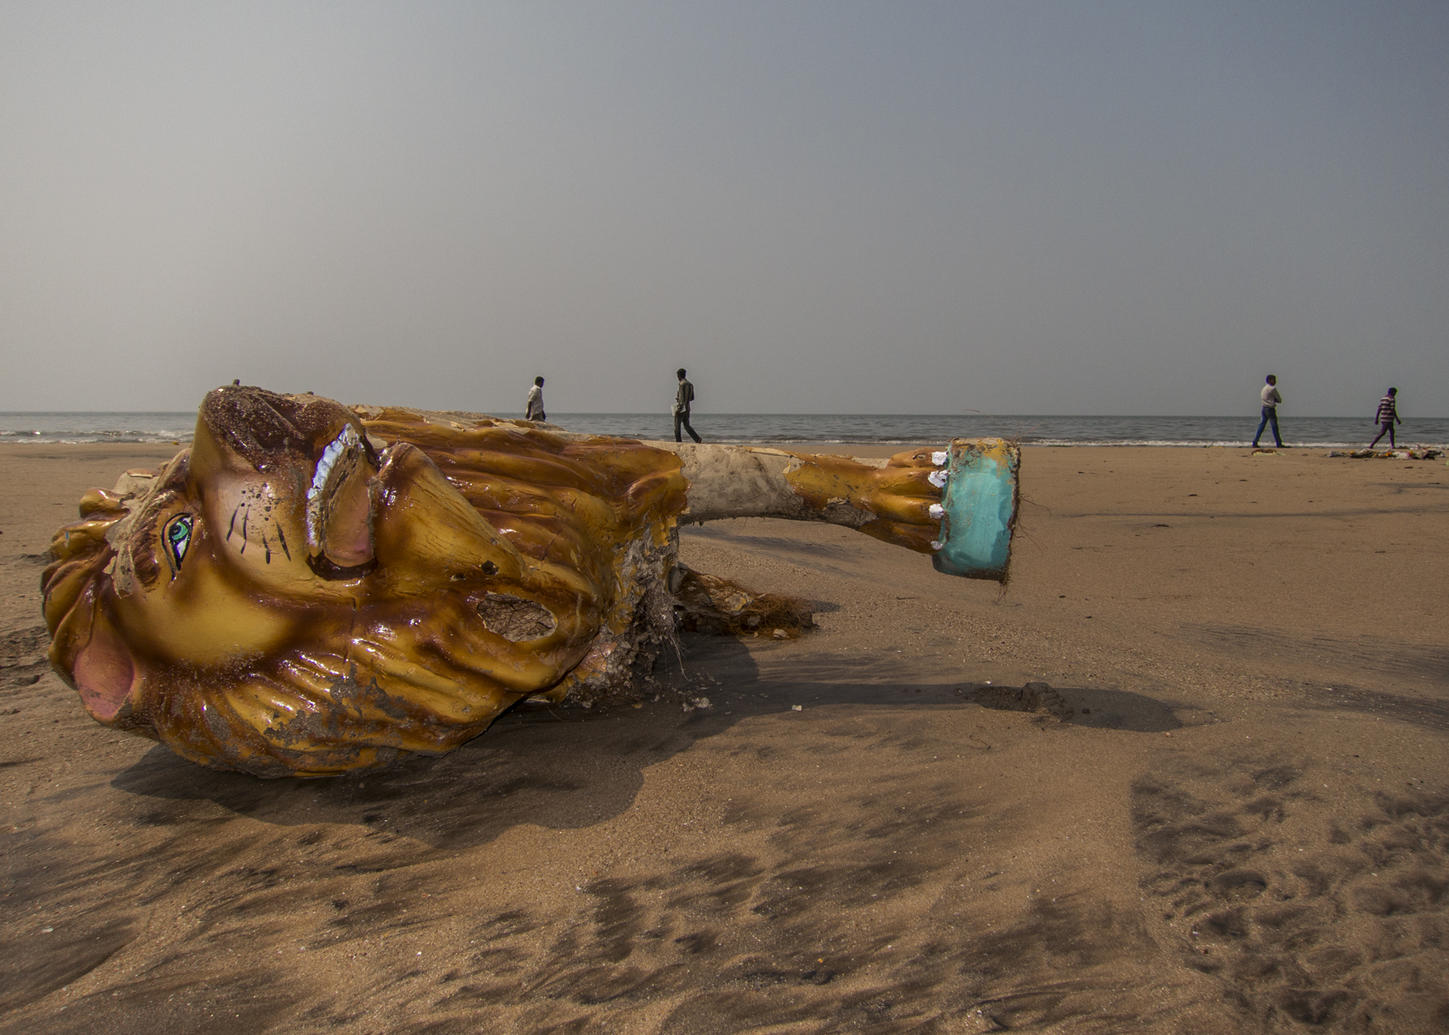 A broken idol lies on the beach after a festival, Mumbai, IND